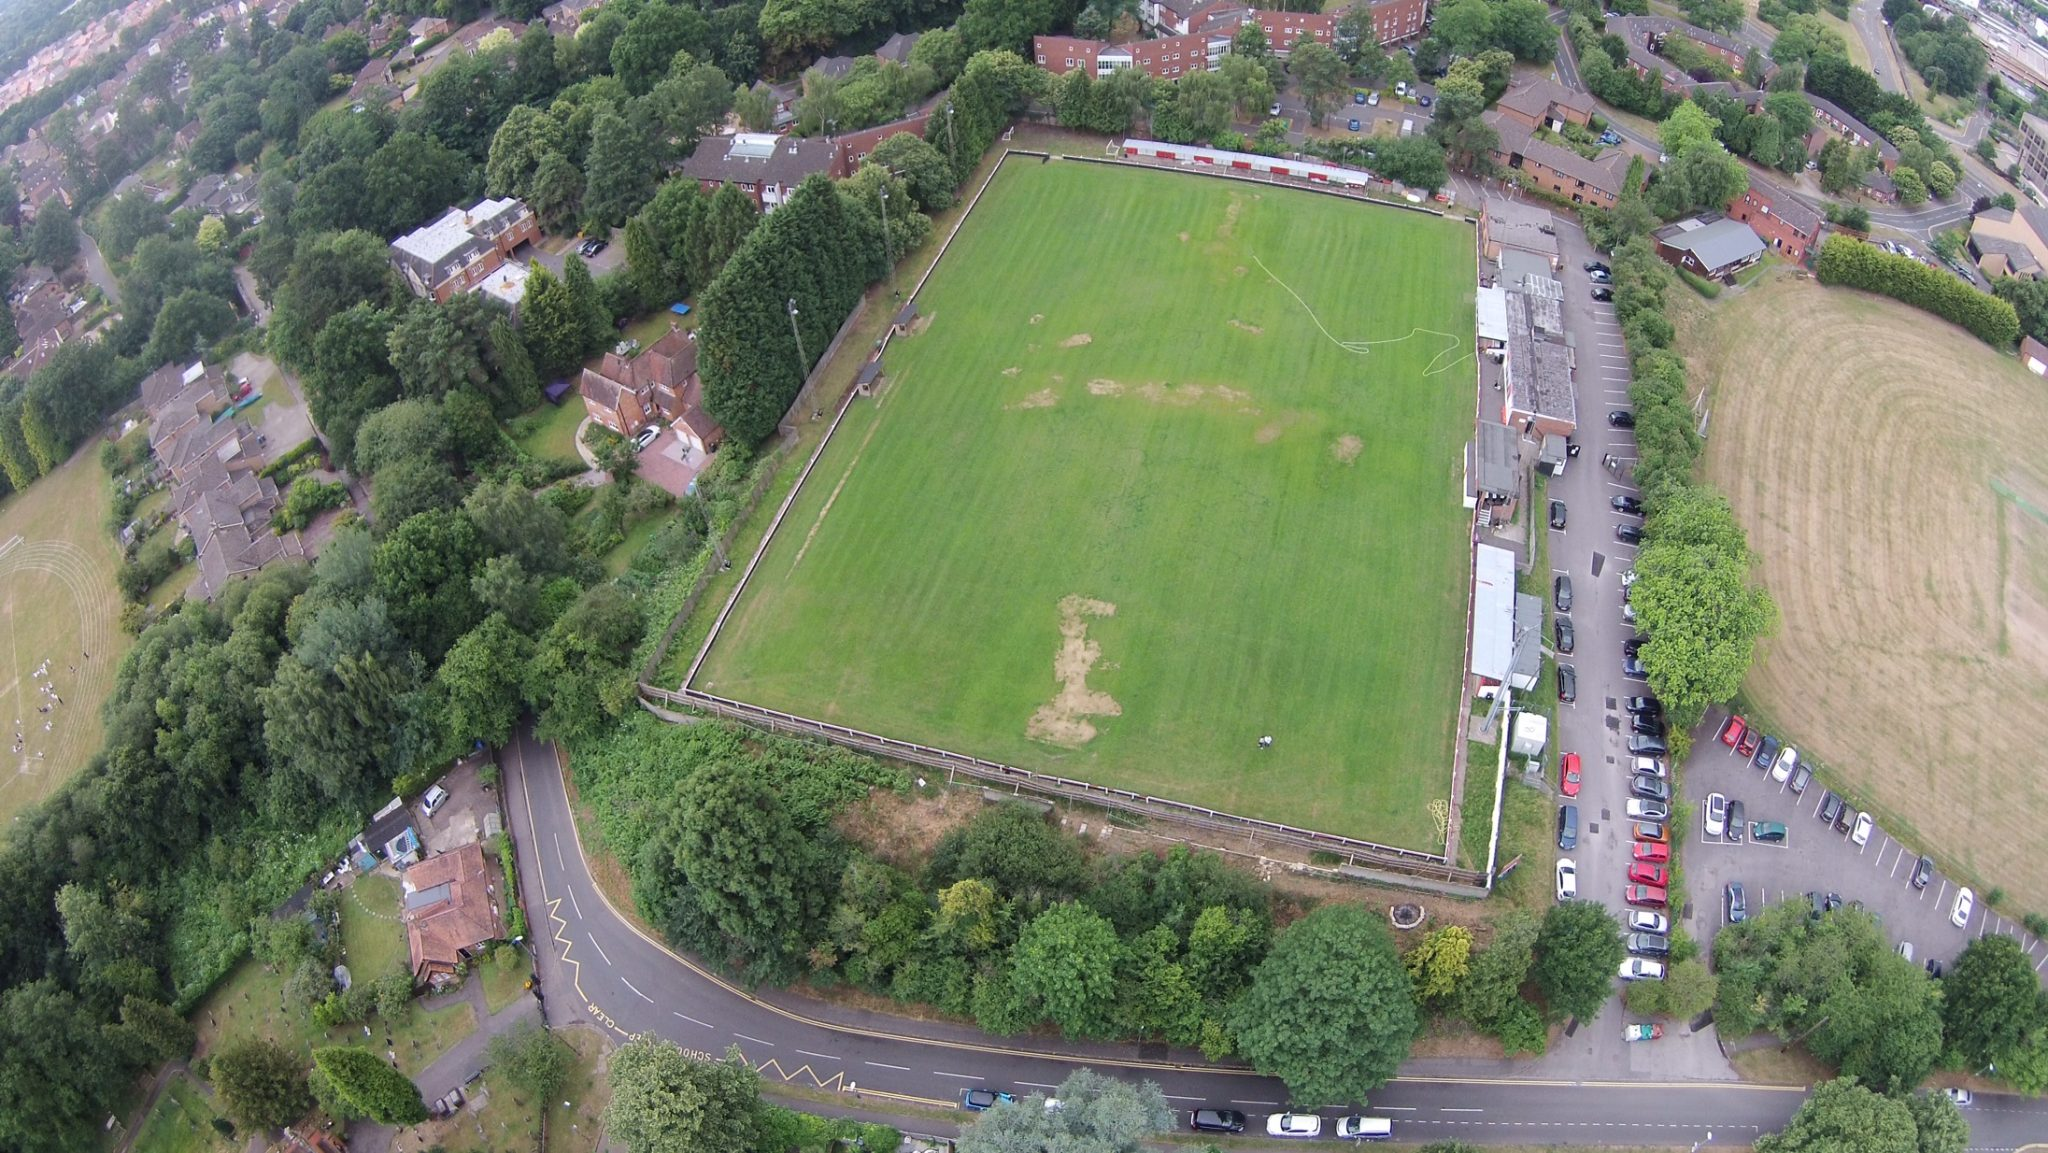 Bracknell Town ground share confirmed – Bracknell News reports